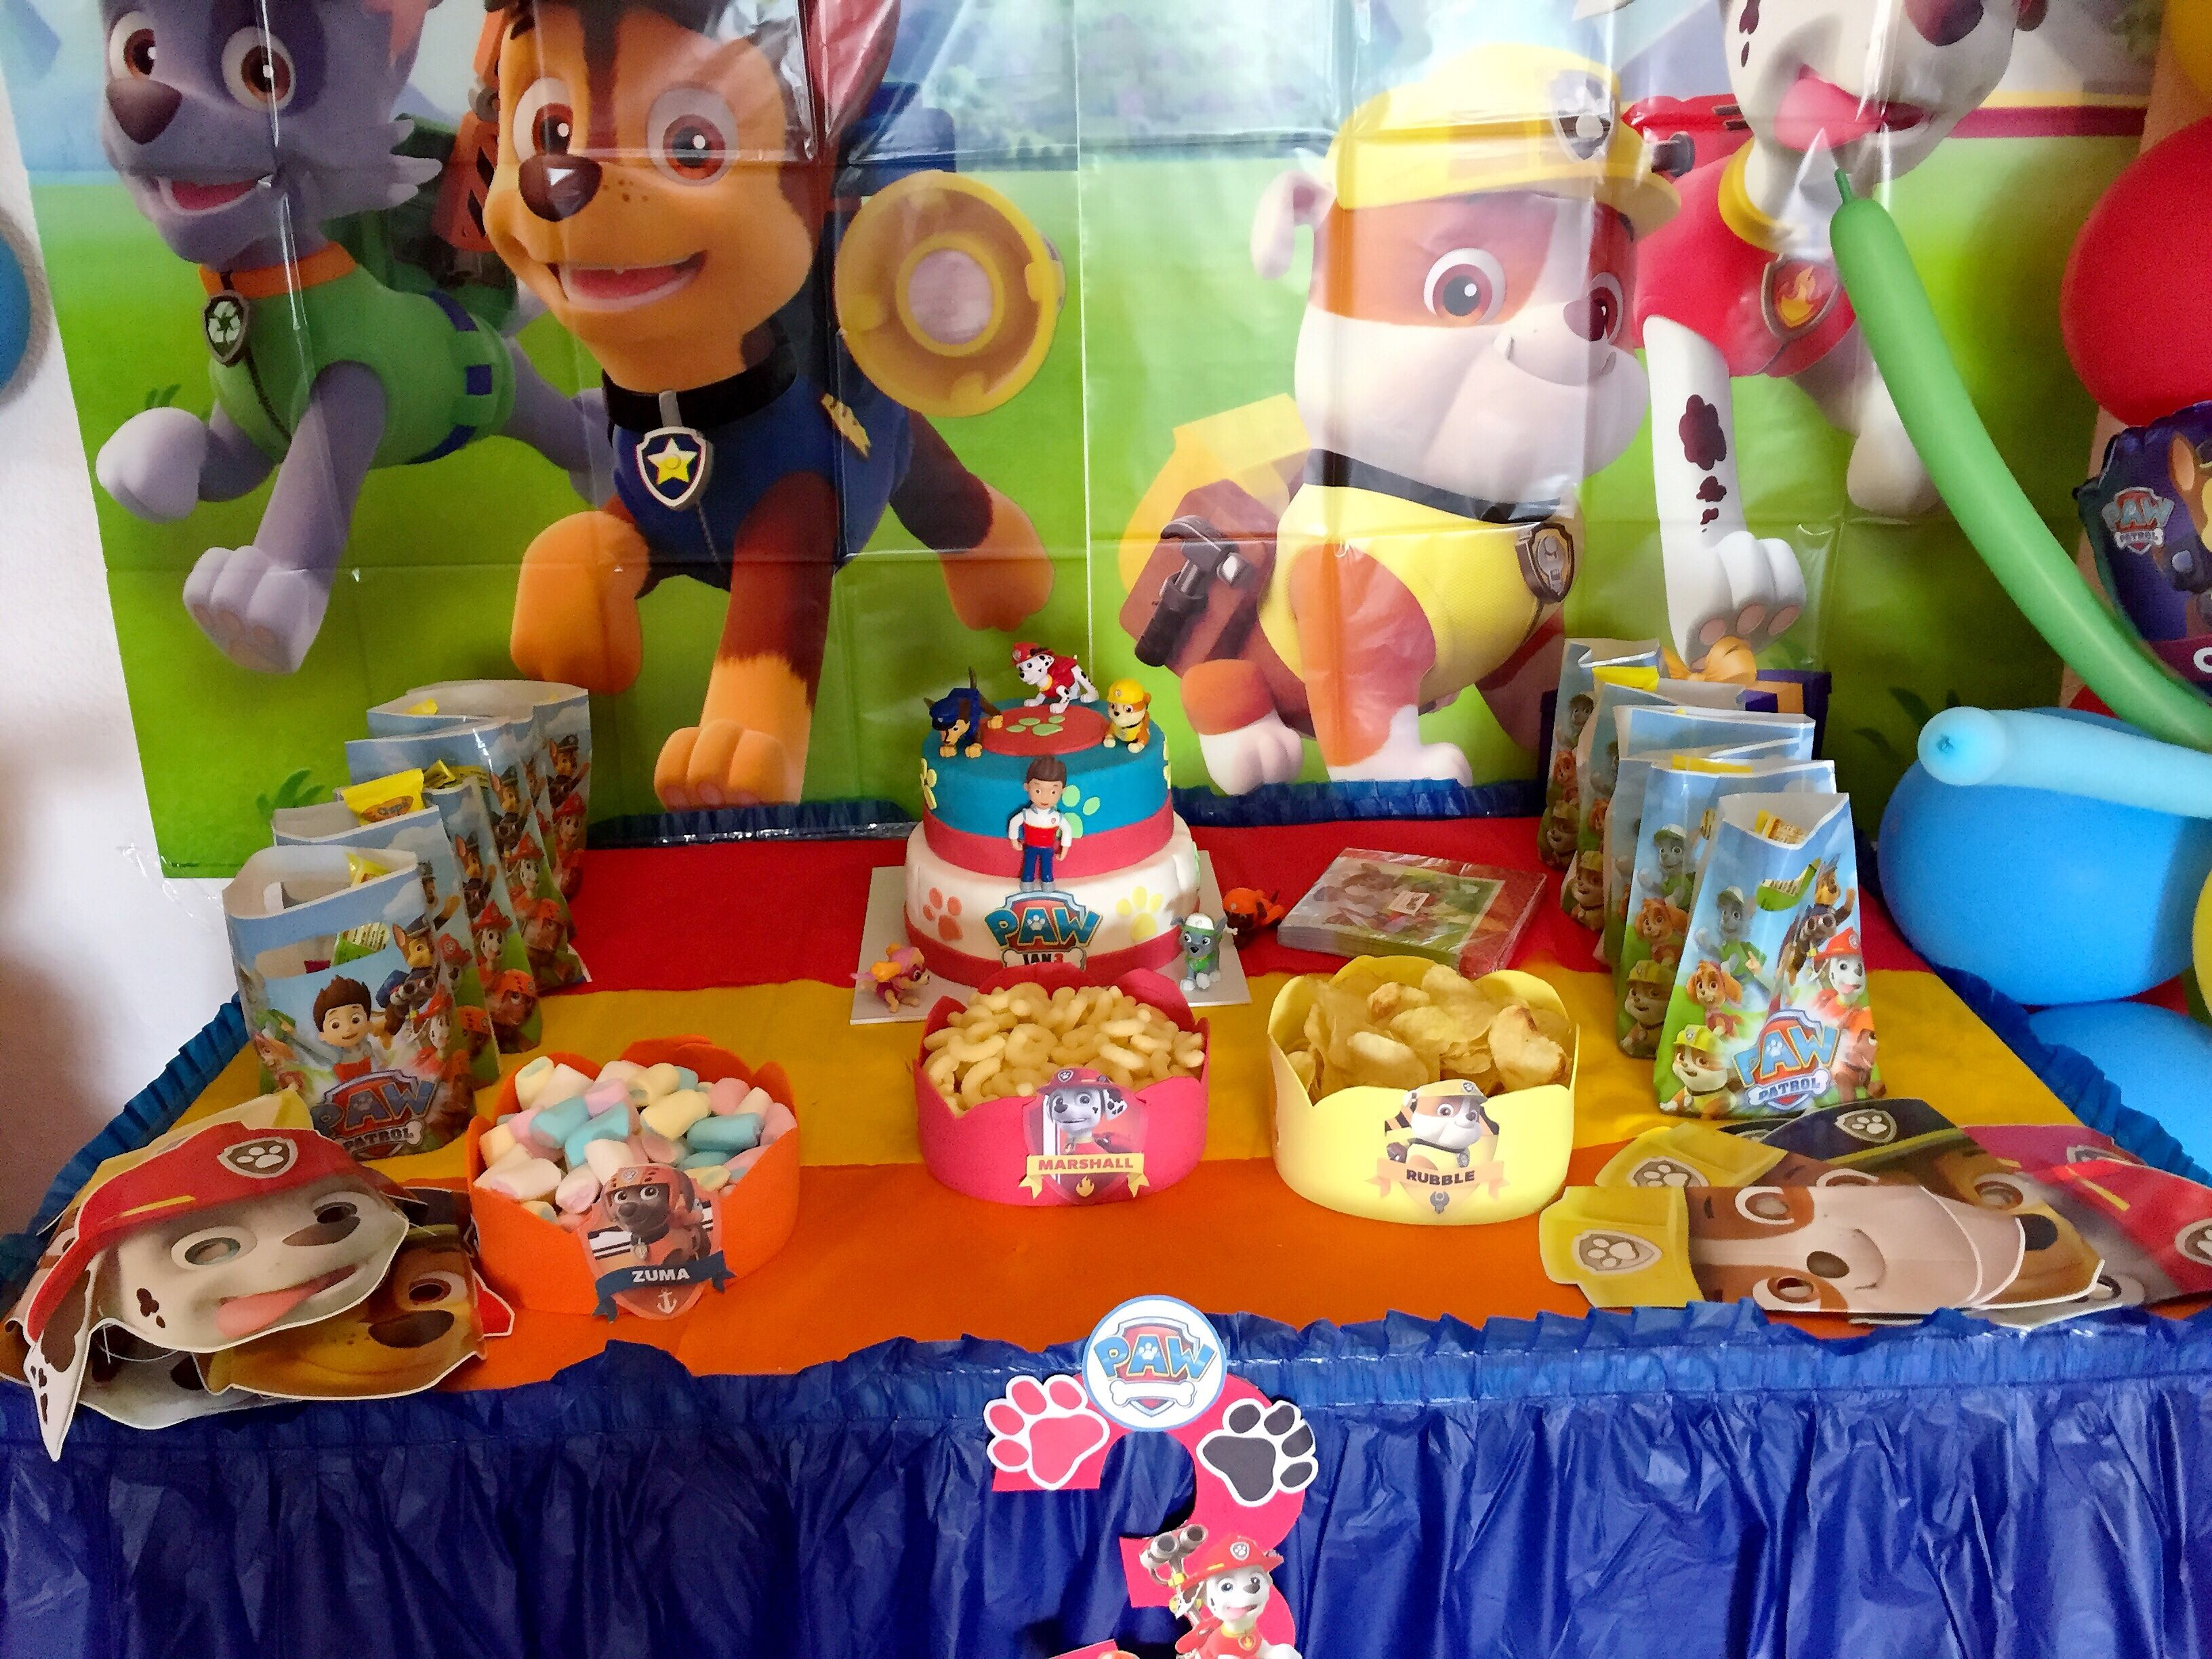 patrulla canina decoracin cumpleaos infantil ideas paw patrol birthday party